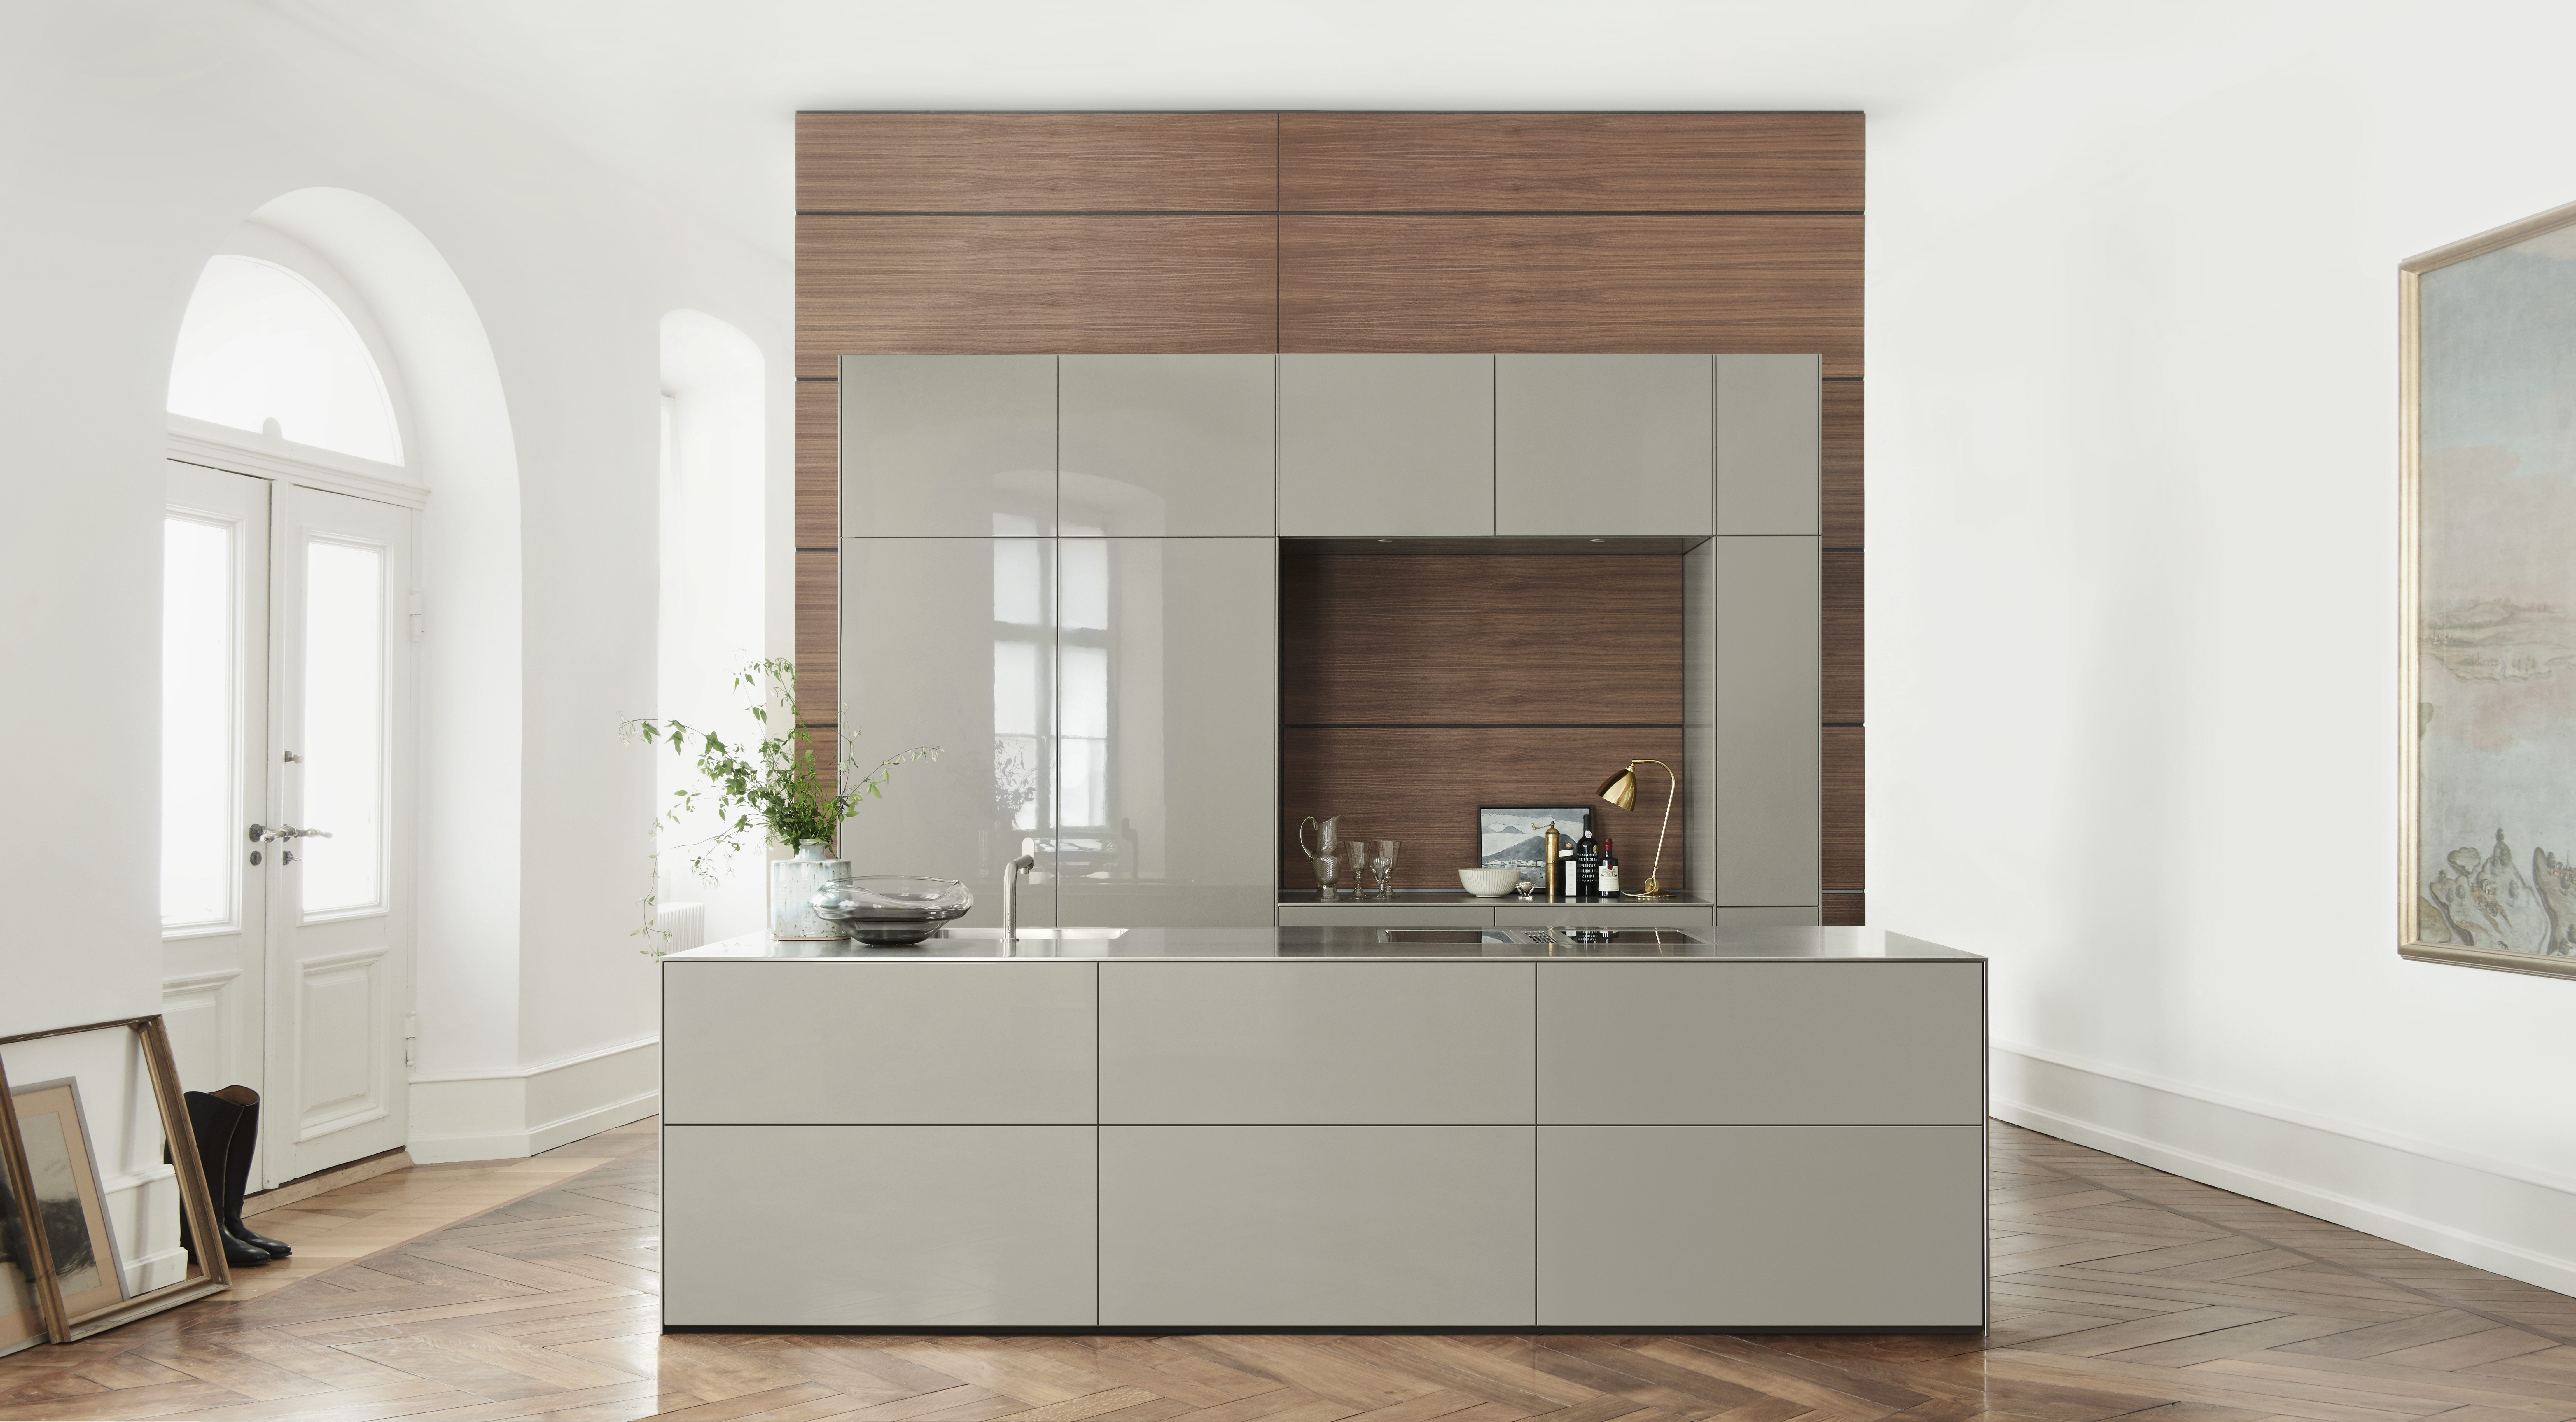 Bulthaupt Küchen Berlin Bulthaup B3 Cabinets In High Gloss Laquer Flint Colour And Walnut